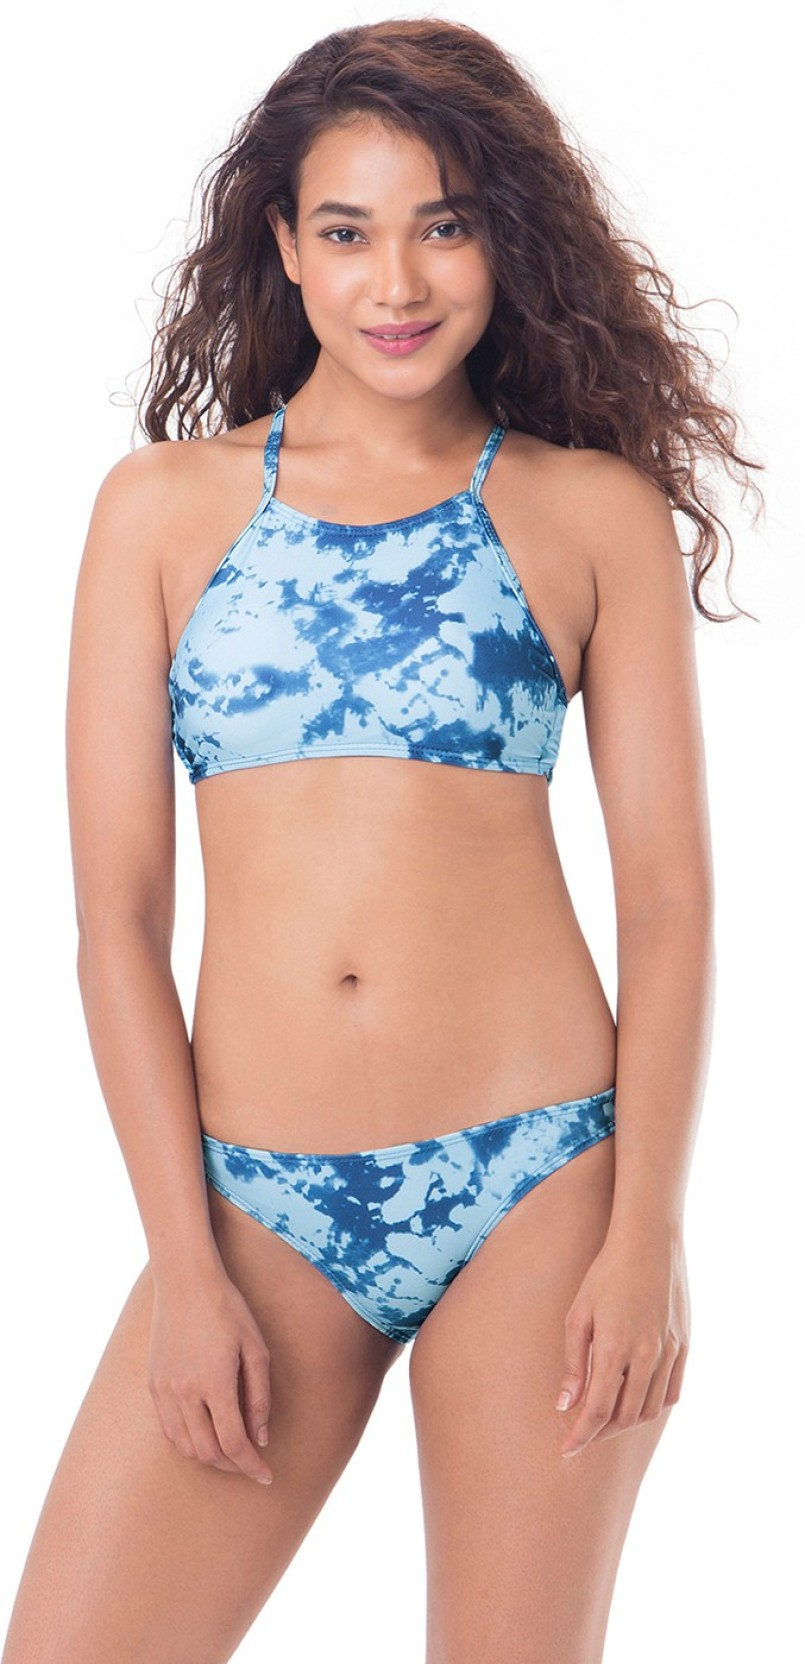 c560b7d046 PrettySecrets Graphic Print Women's Swimsuit - Buy Blue, Multi ...